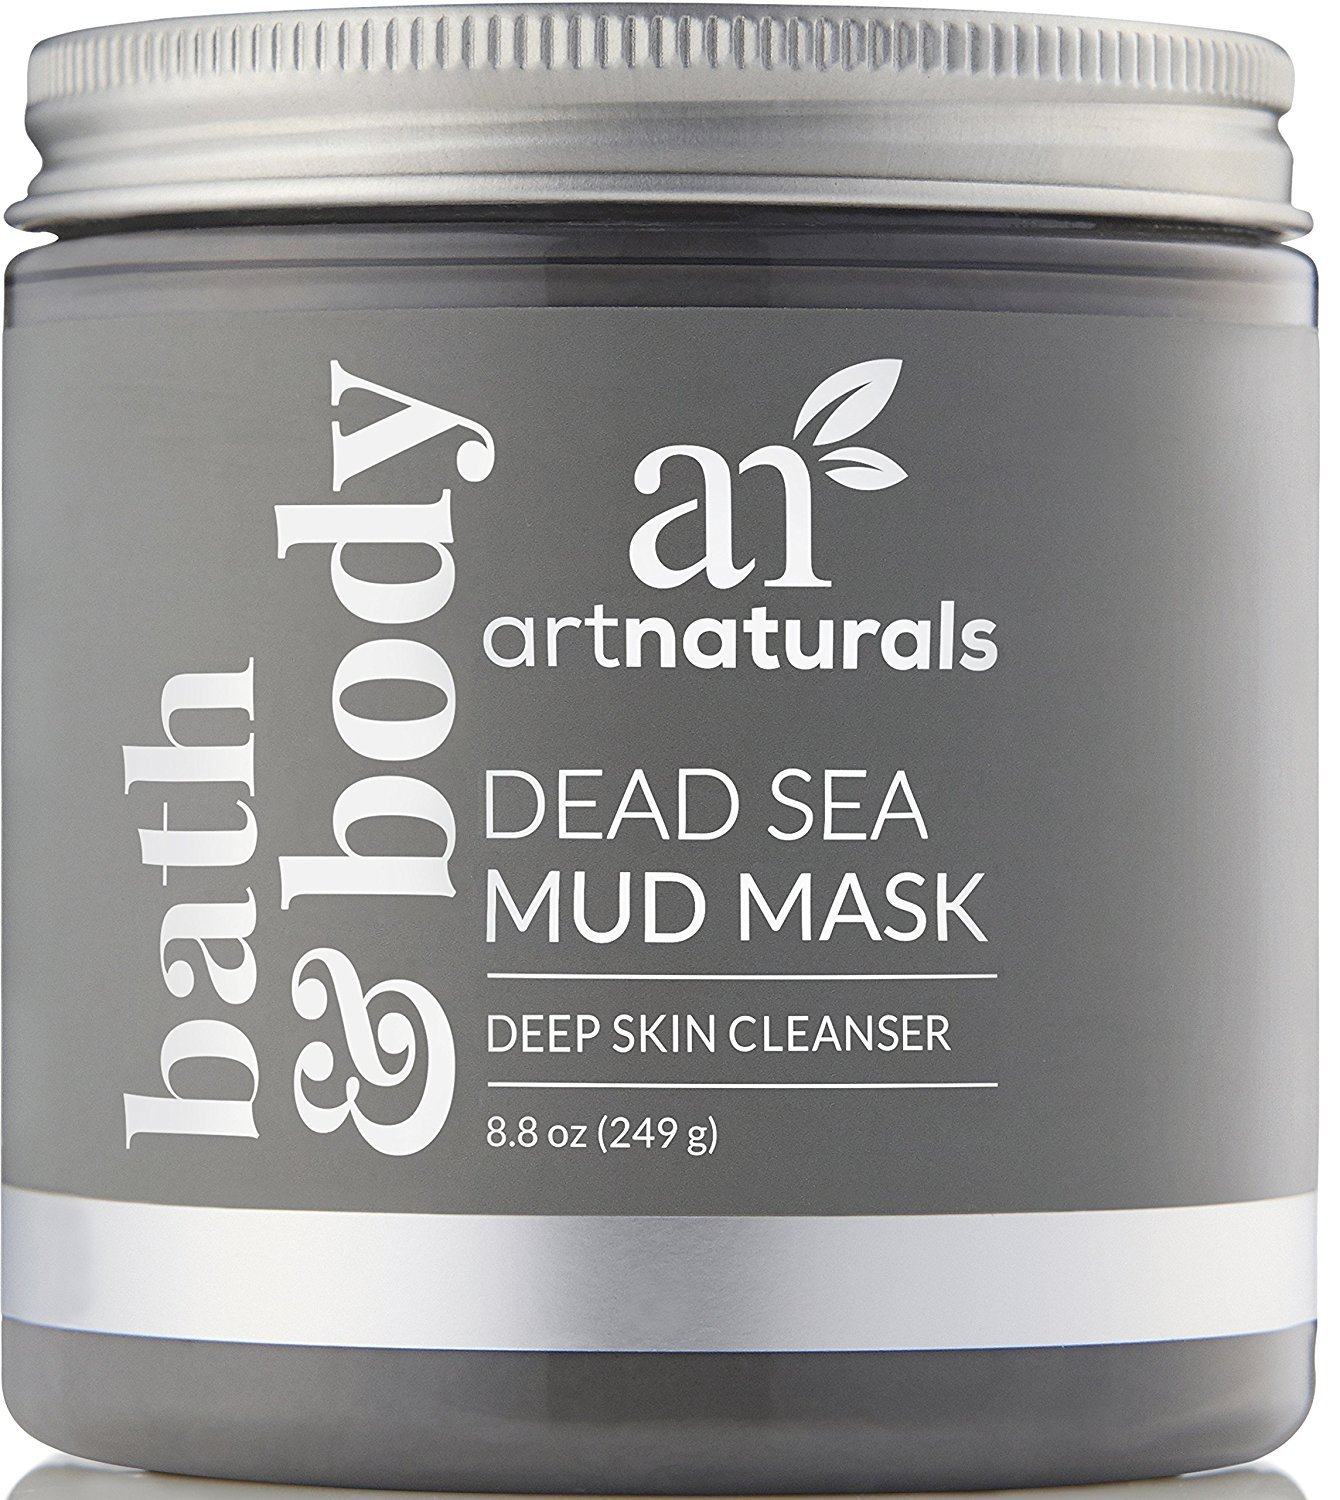 ArtNaturals Dead Sea Mud Mask - for Face, Body & Hair 8.8 oz, 100% Natural and Organic Deep Skin Cleanser - Clears Acne, Reduces Pores & Wrinkles - Ultimate Spa Quality - Mineral Infused Additive Free